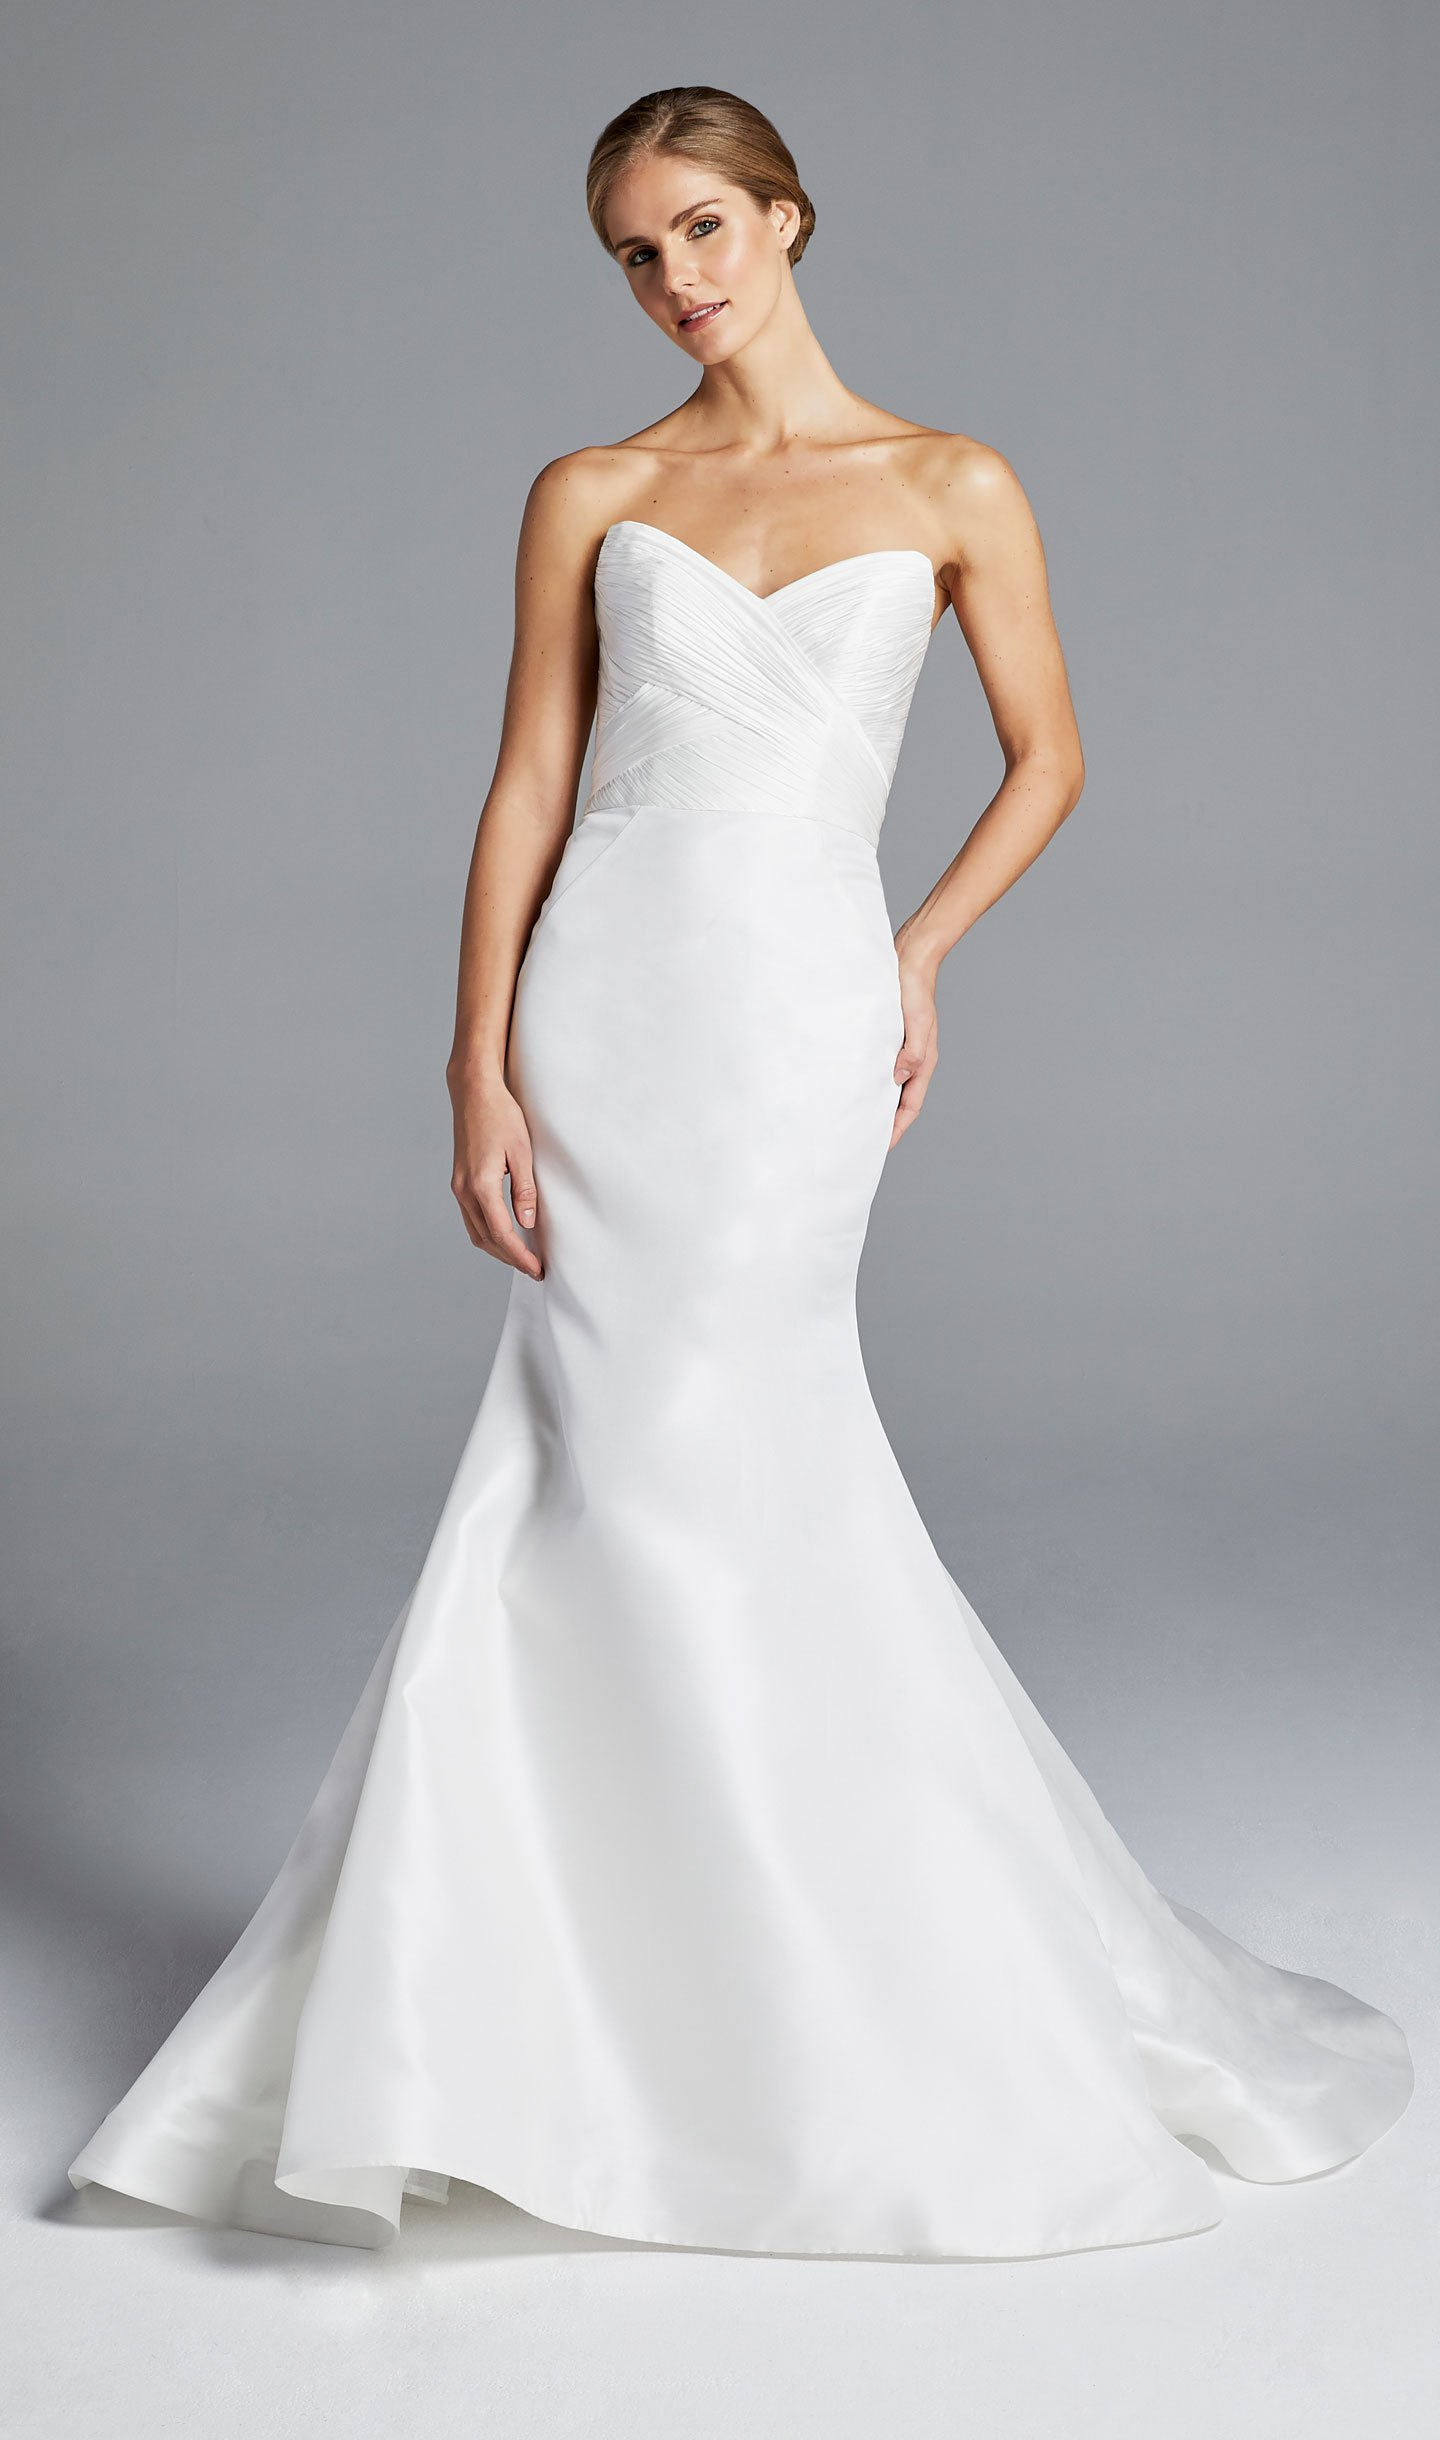 From The Sweetheart Neckline To Ethereal Tulle Skirt This Strapless Mermaid Wedding Dress Is As Lovely Can Be Ruching Bodice Through